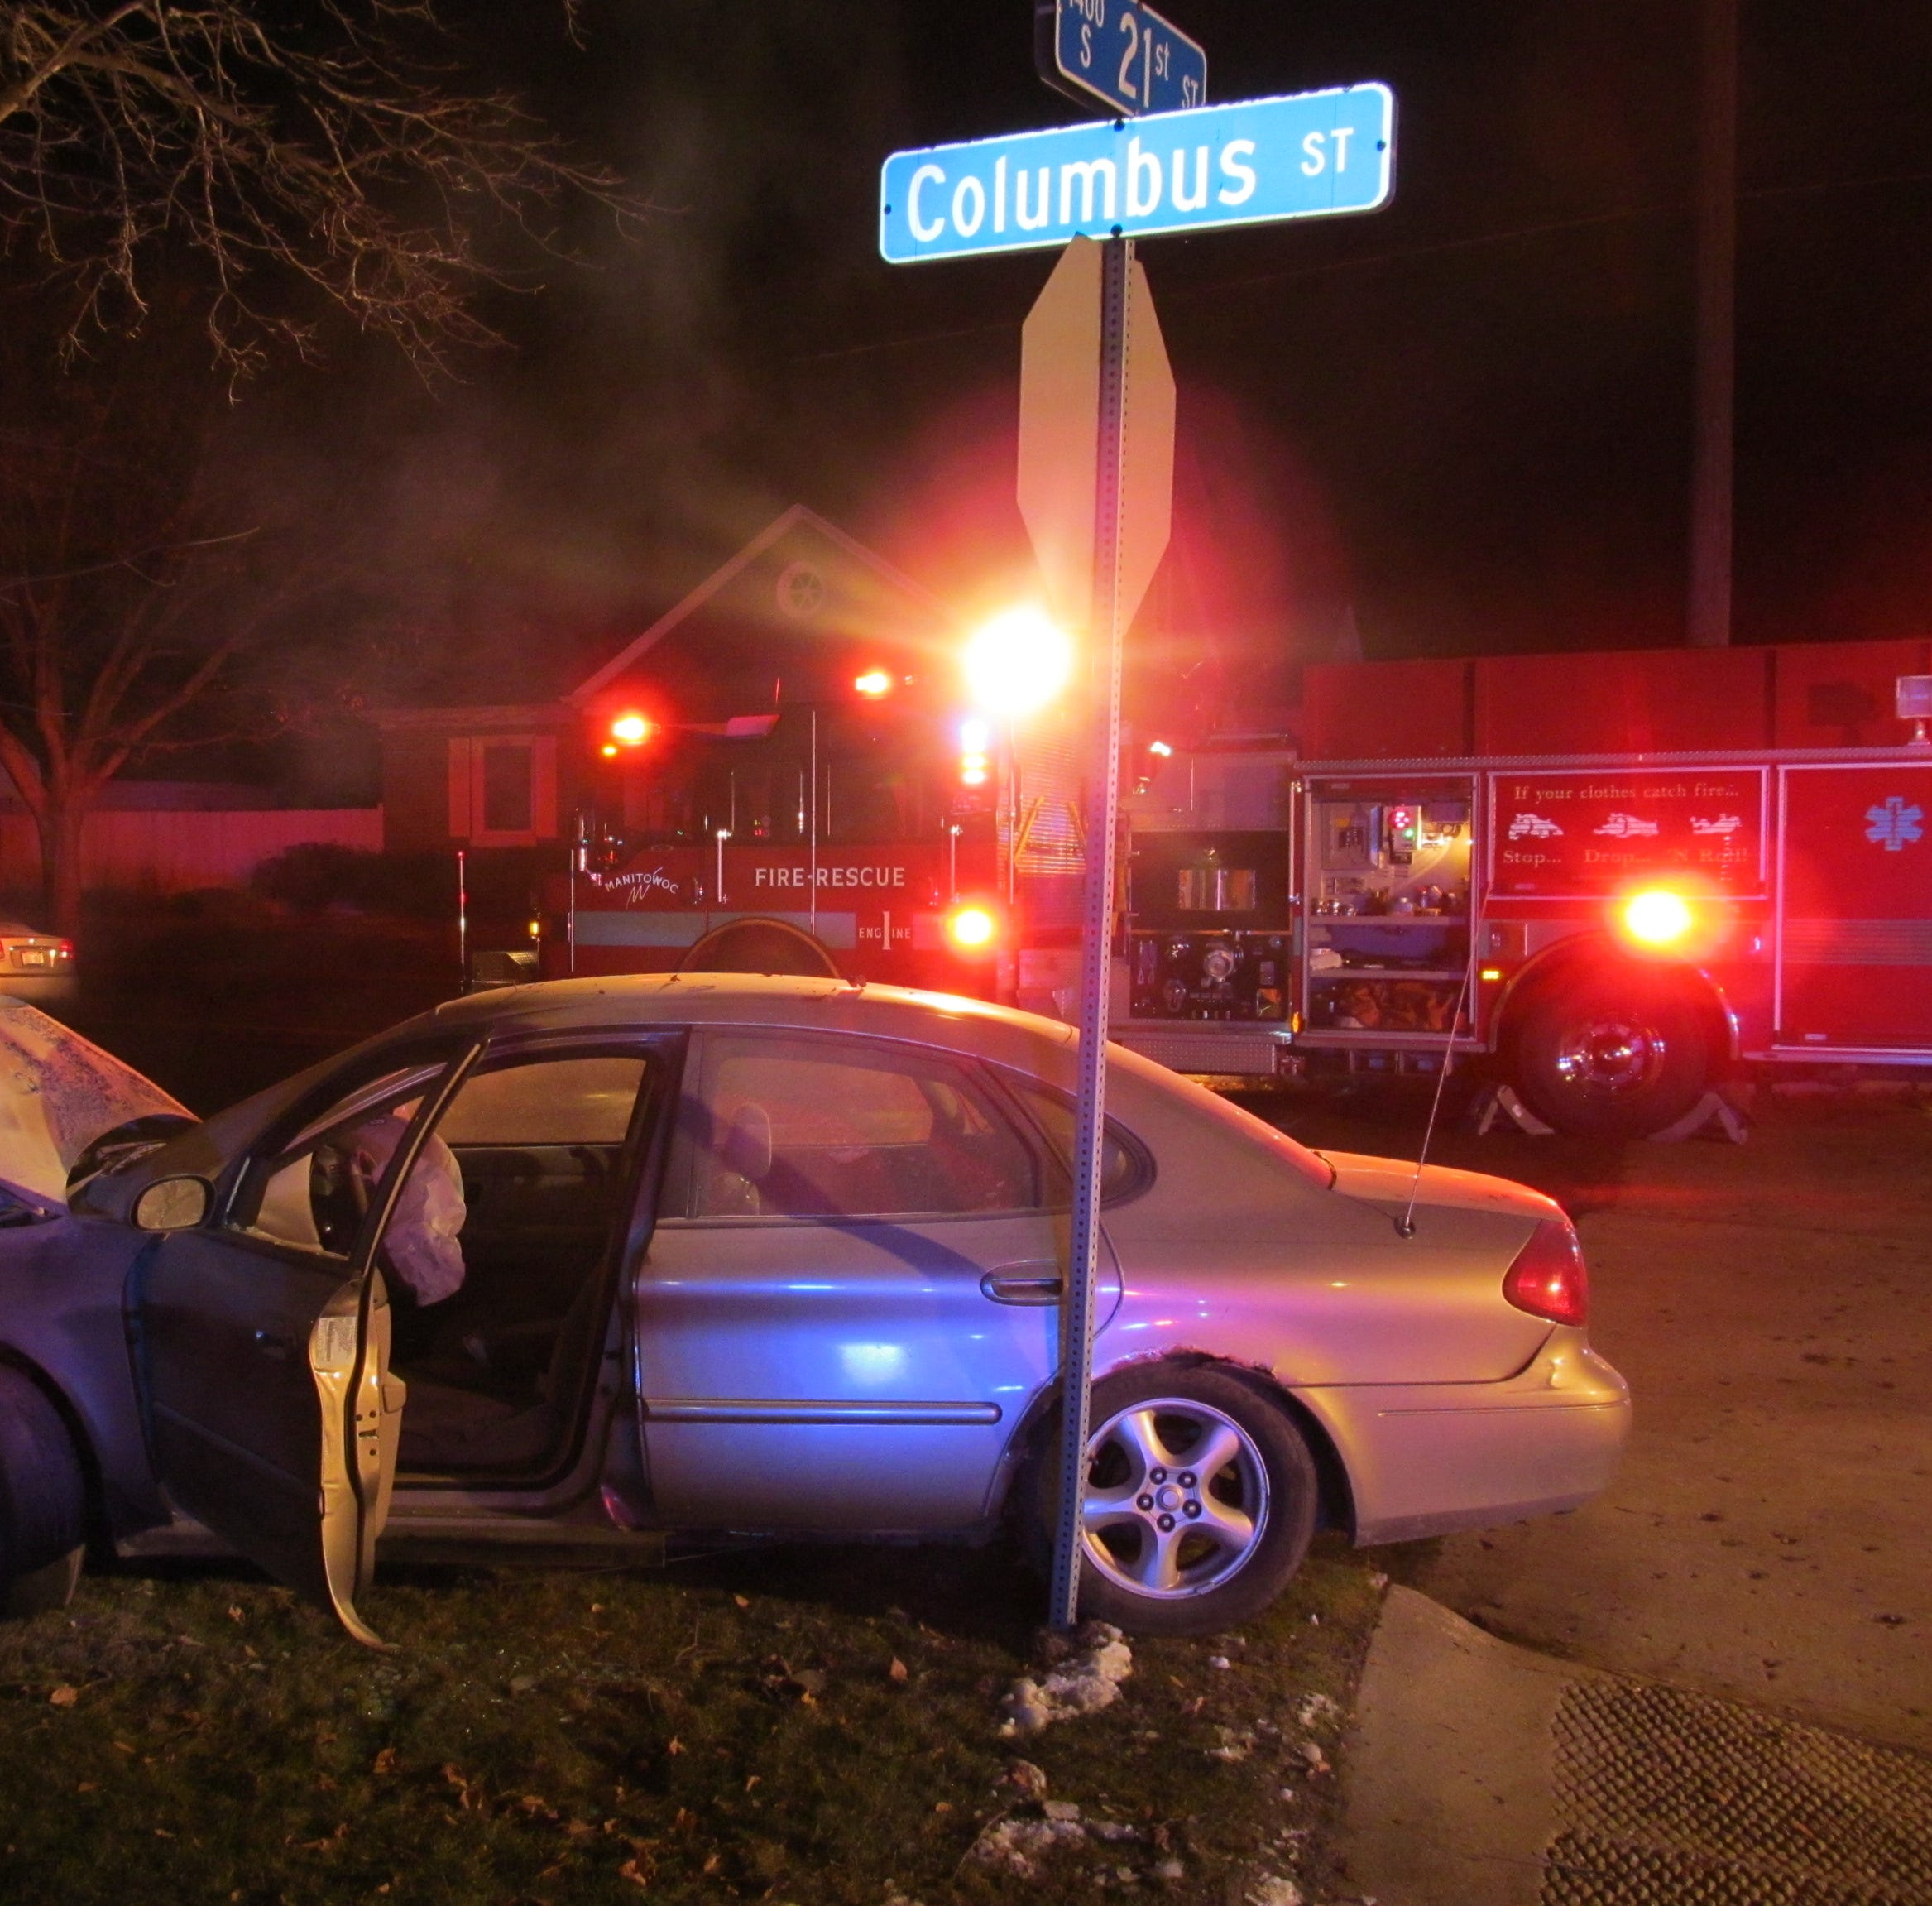 Manitowoc high-speed chase ends when driver hits tree, sets car on fire